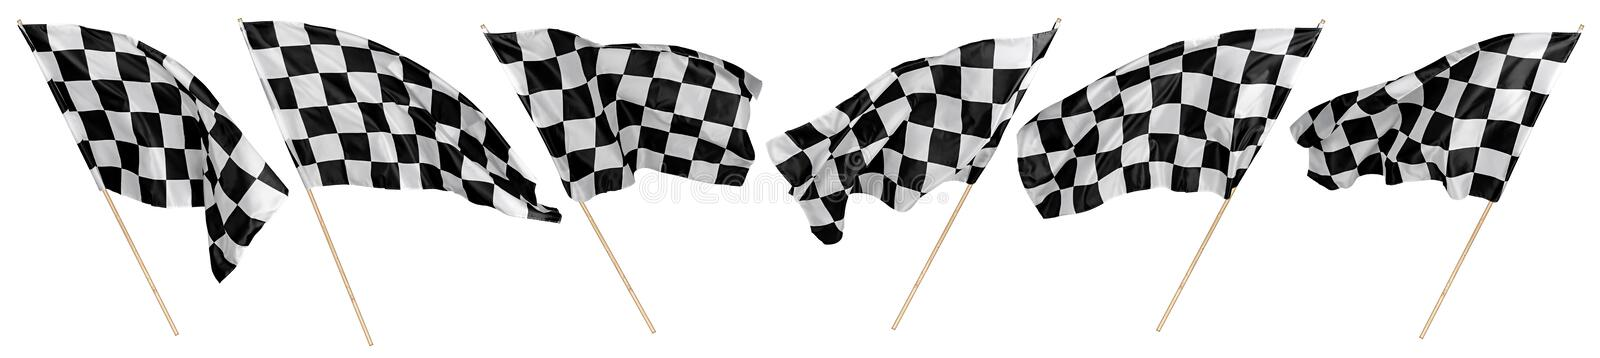 Set collection of waving black white chequered flag wooden stick motorsport sport and racing concept isolated background. Set collection of waving black white royalty free stock image